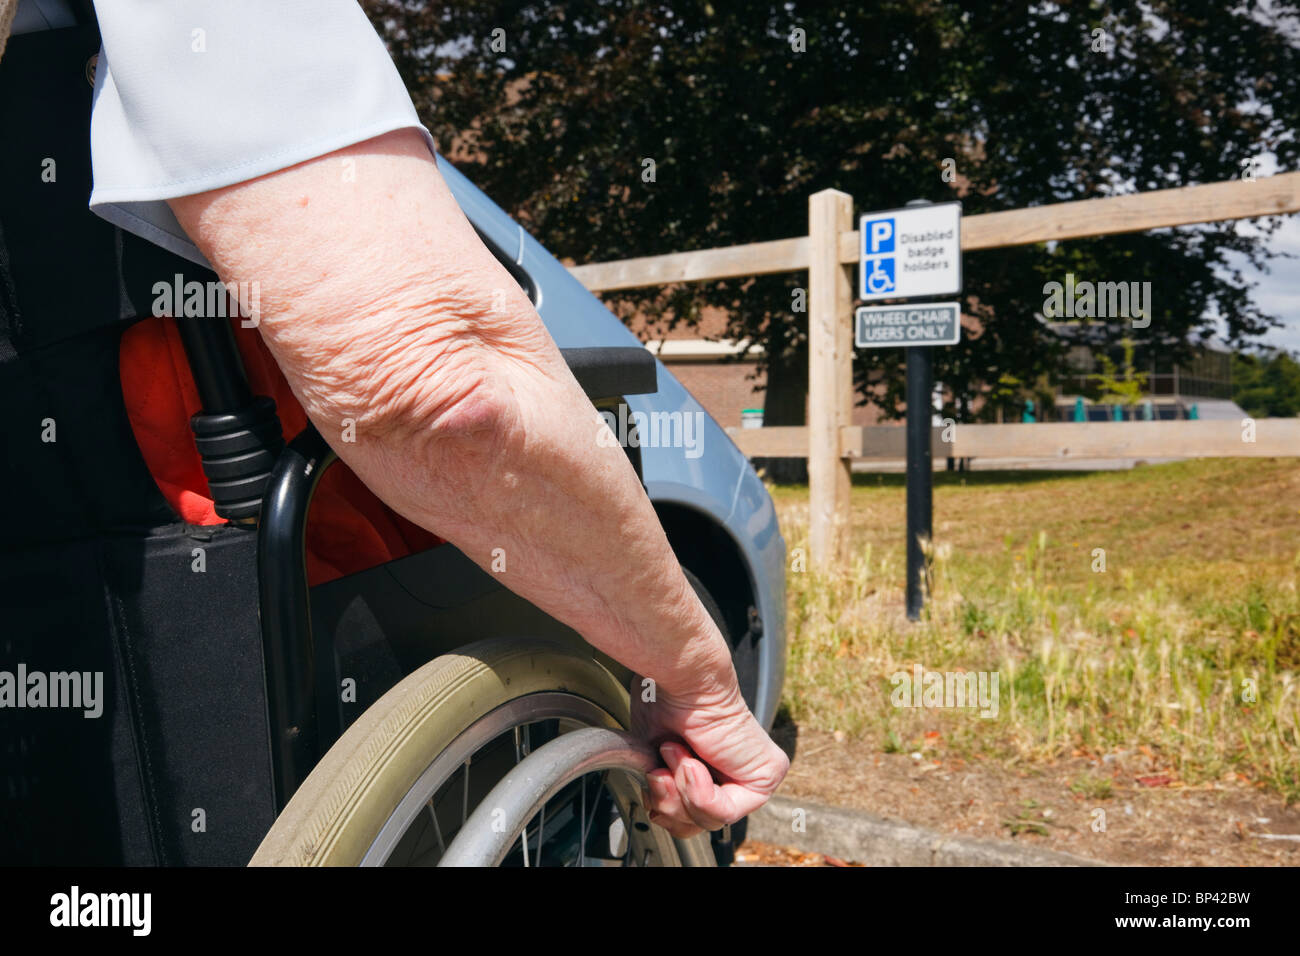 Elderly woman in a wheelchair by a car parked in blue badge disabled parking bay with sign for wheelchair users - Stock Image